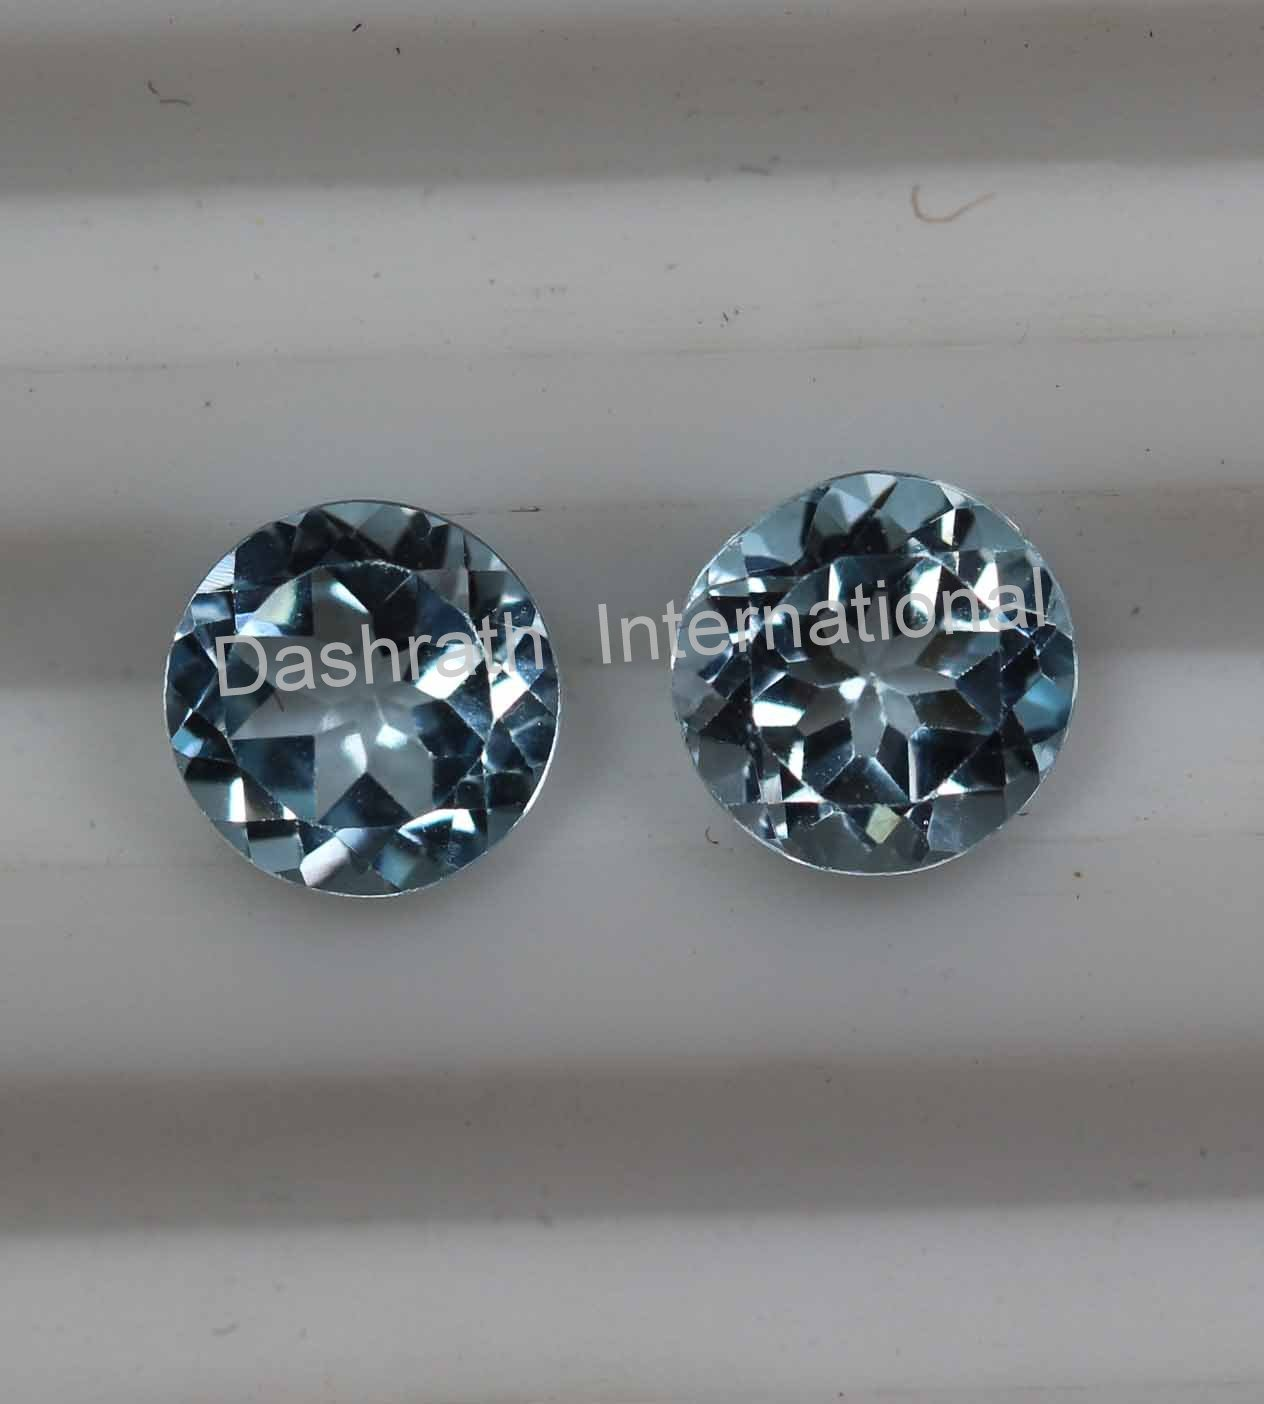 8mmNatural Sky Blue Topaz Faceted Cut Round 25 Pieces Lot Blue Color  Top Quality Loose Gemstone